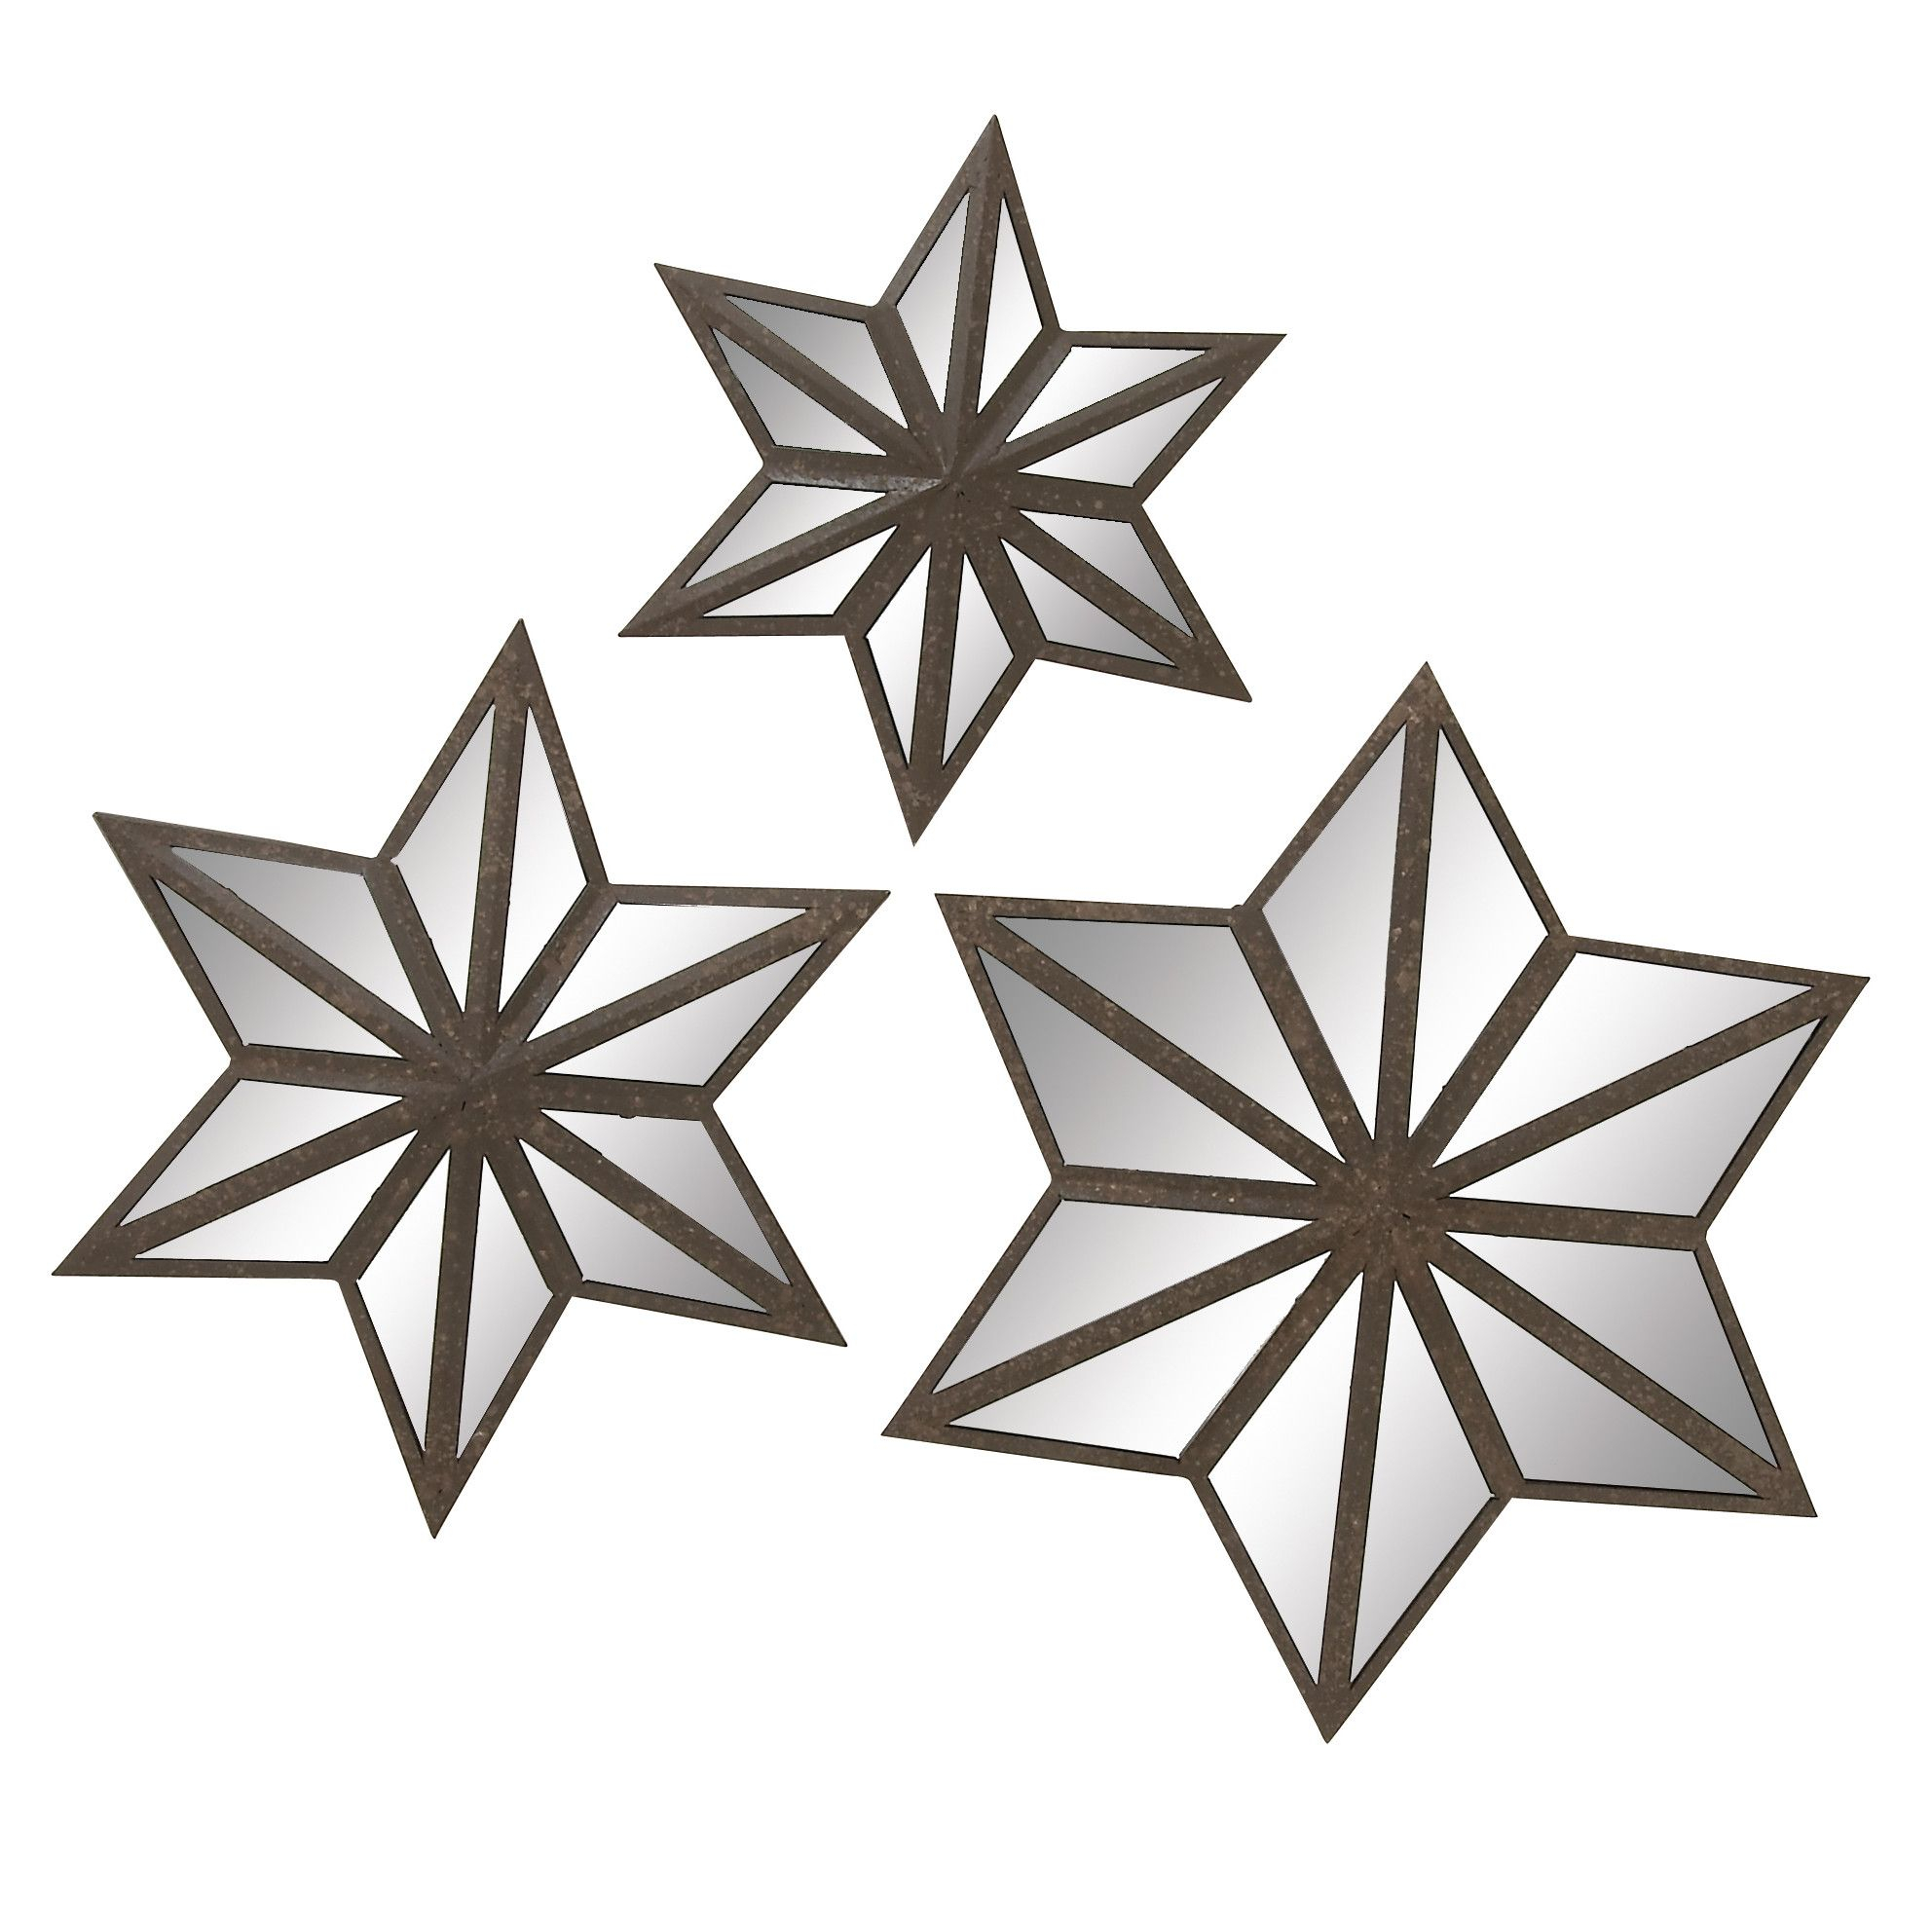 3 Piece Metal Star Mirror Wall Decor Set | Products For 3 Piece Star Wall Decor Sets (View 21 of 30)